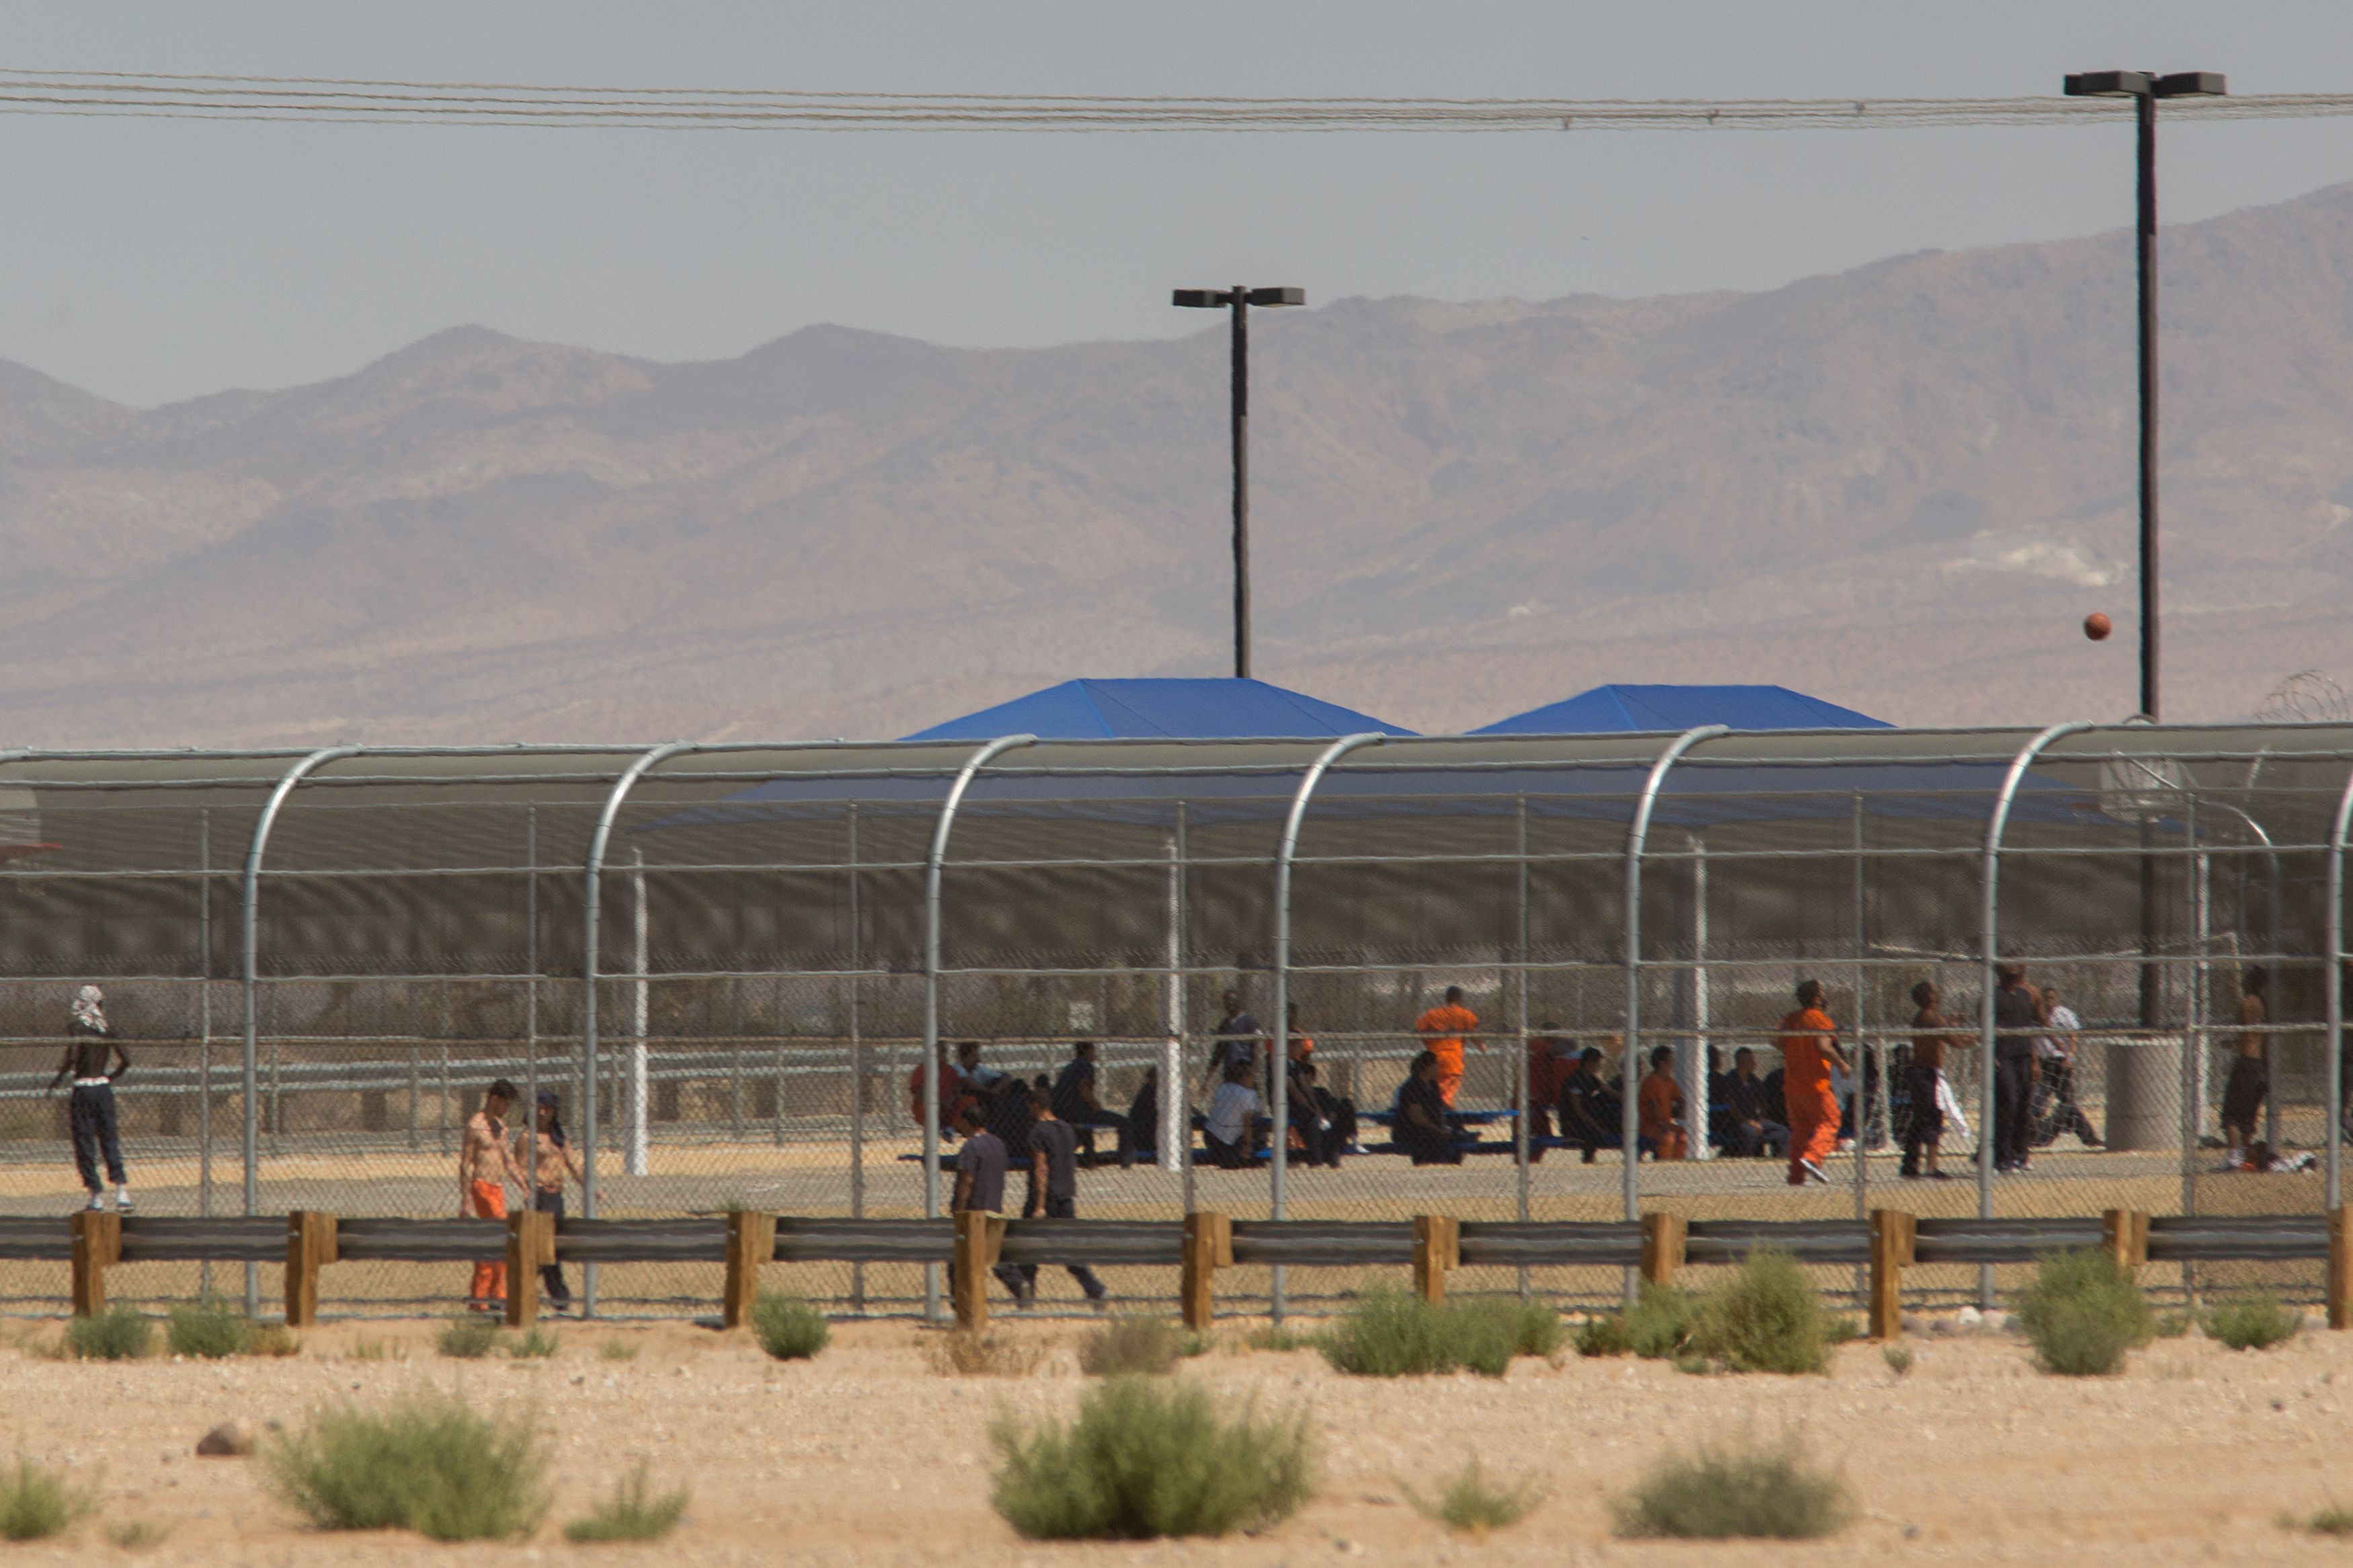 Inspector Paints A Rosy Picture Of Migrant Detention Centers